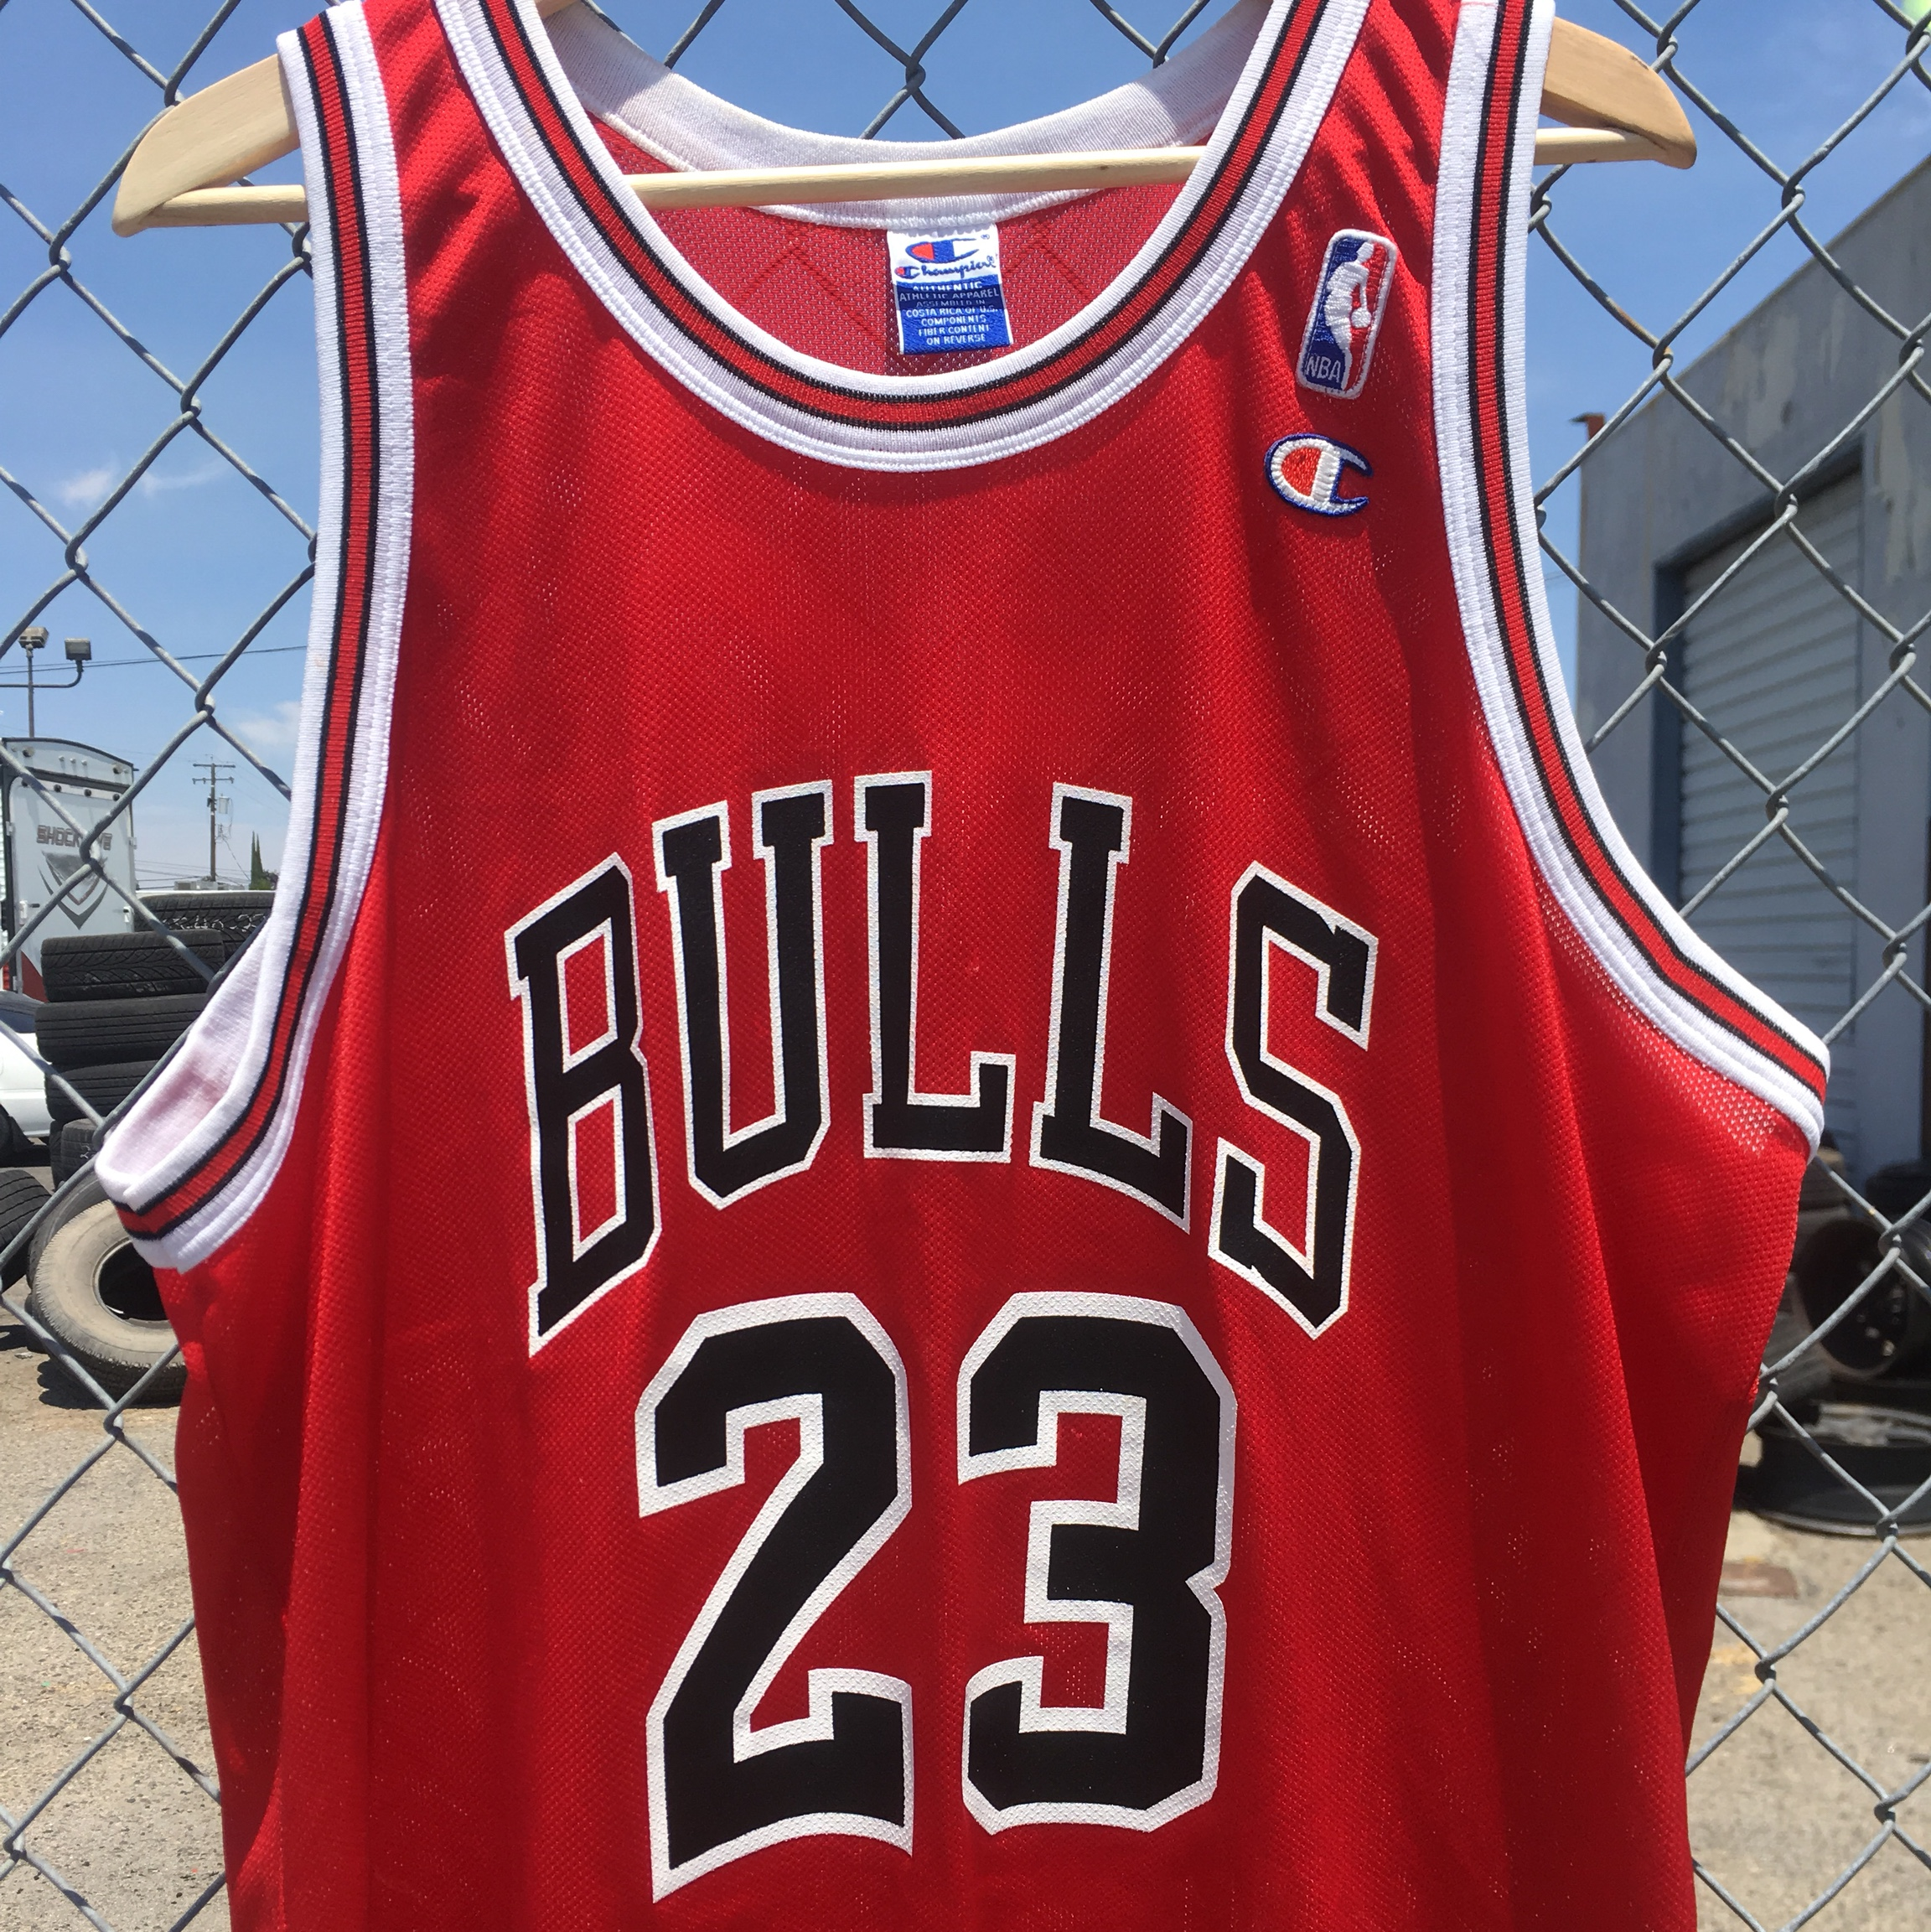 the best attitude fffba cf374 Champion MJ jersey Sz 48 - Depop